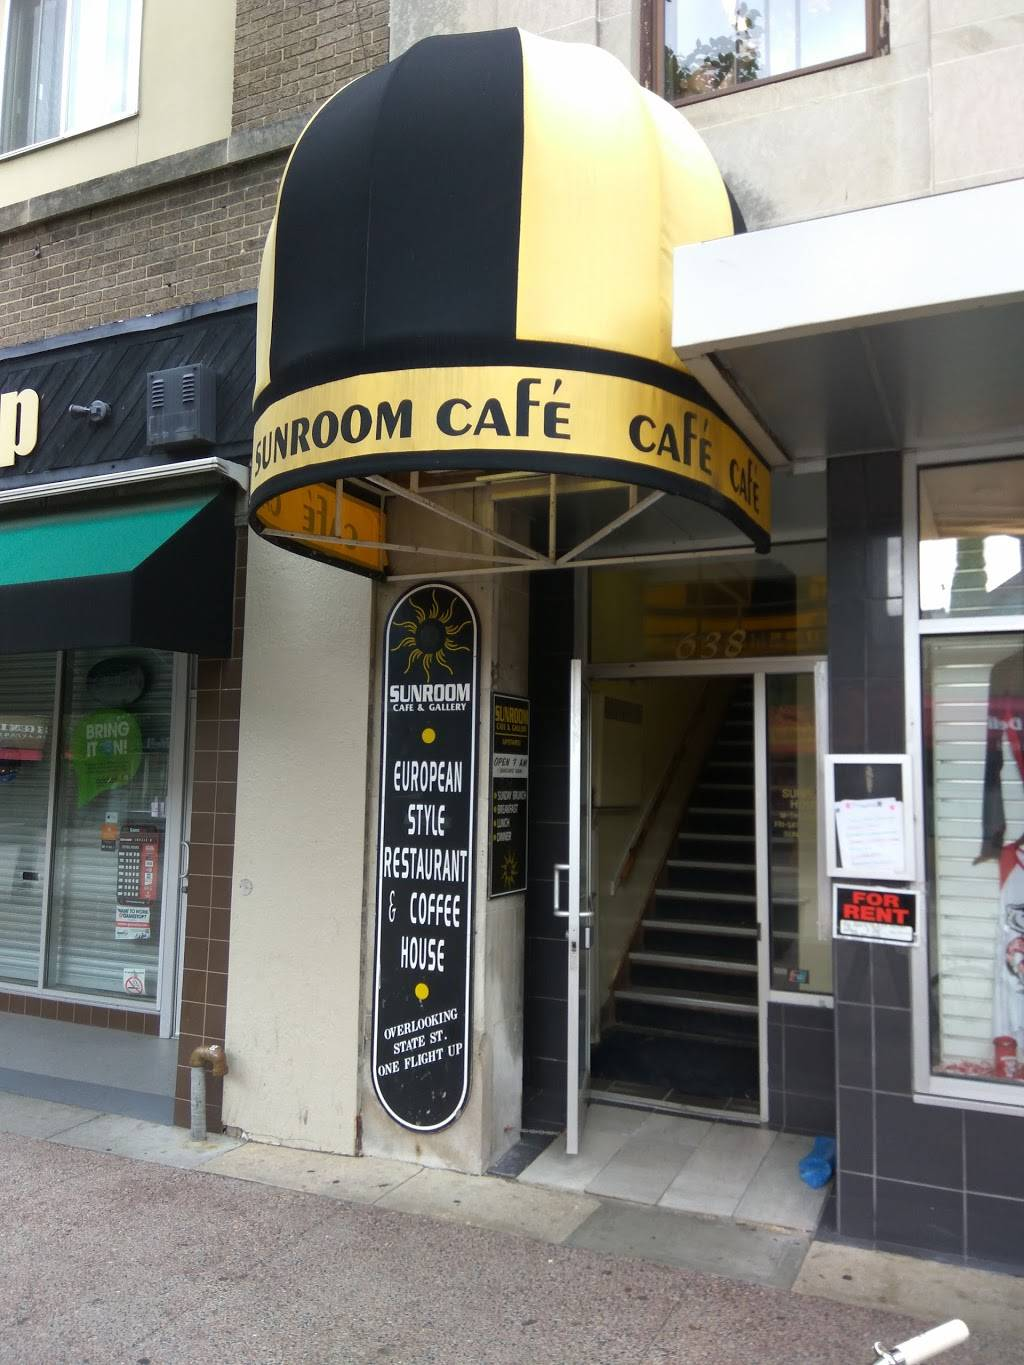 Sunroom Cafe | cafe | 638 State St, Madison, WI 53703, USA | 6082551555 OR +1 608-255-1555